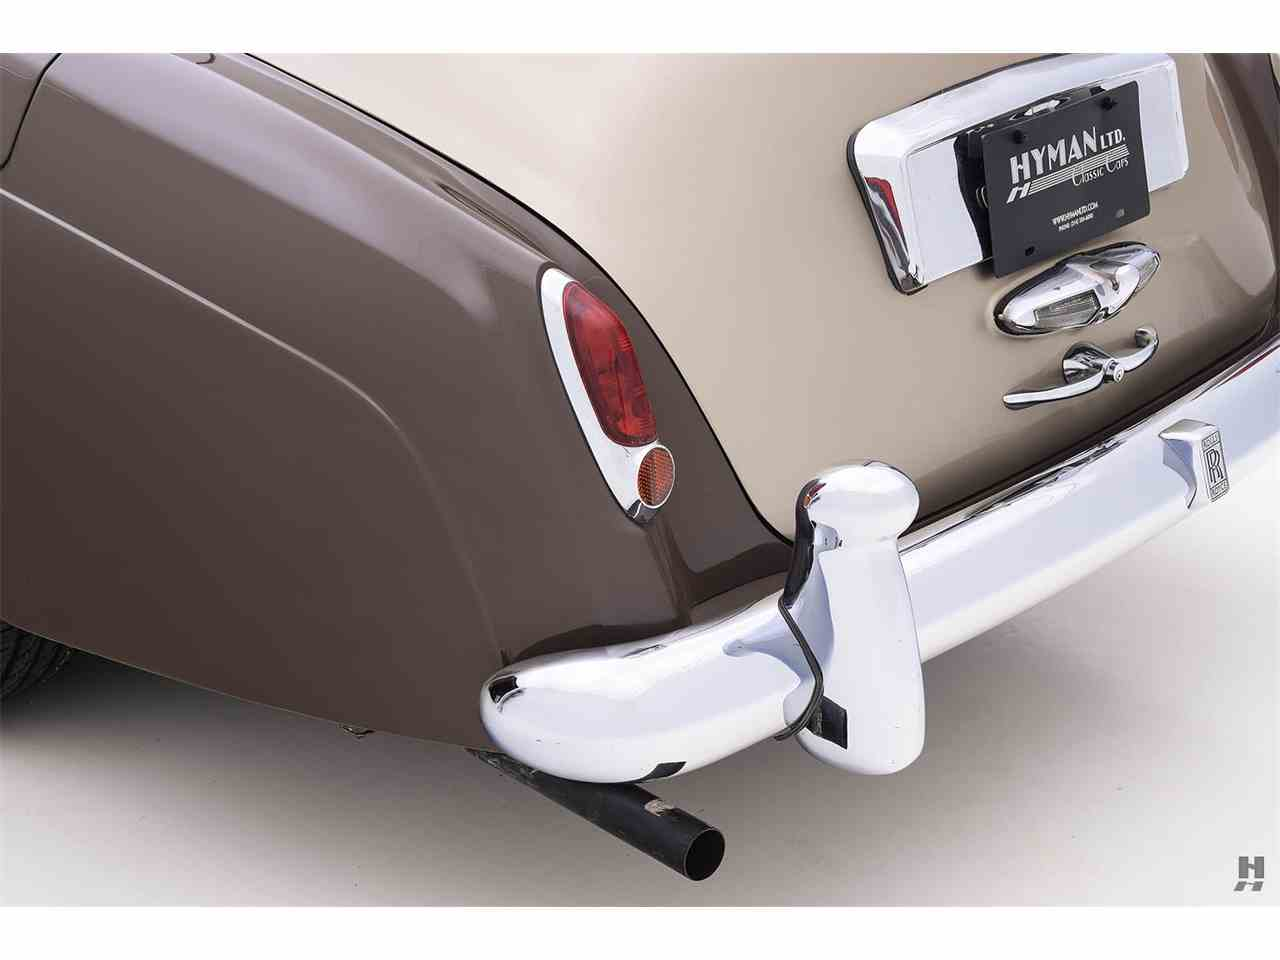 Large Picture of 1962 Rolls-Royce Silver Cloud II - $69,500.00 Offered by Hyman Ltd. Classic Cars - LEAS